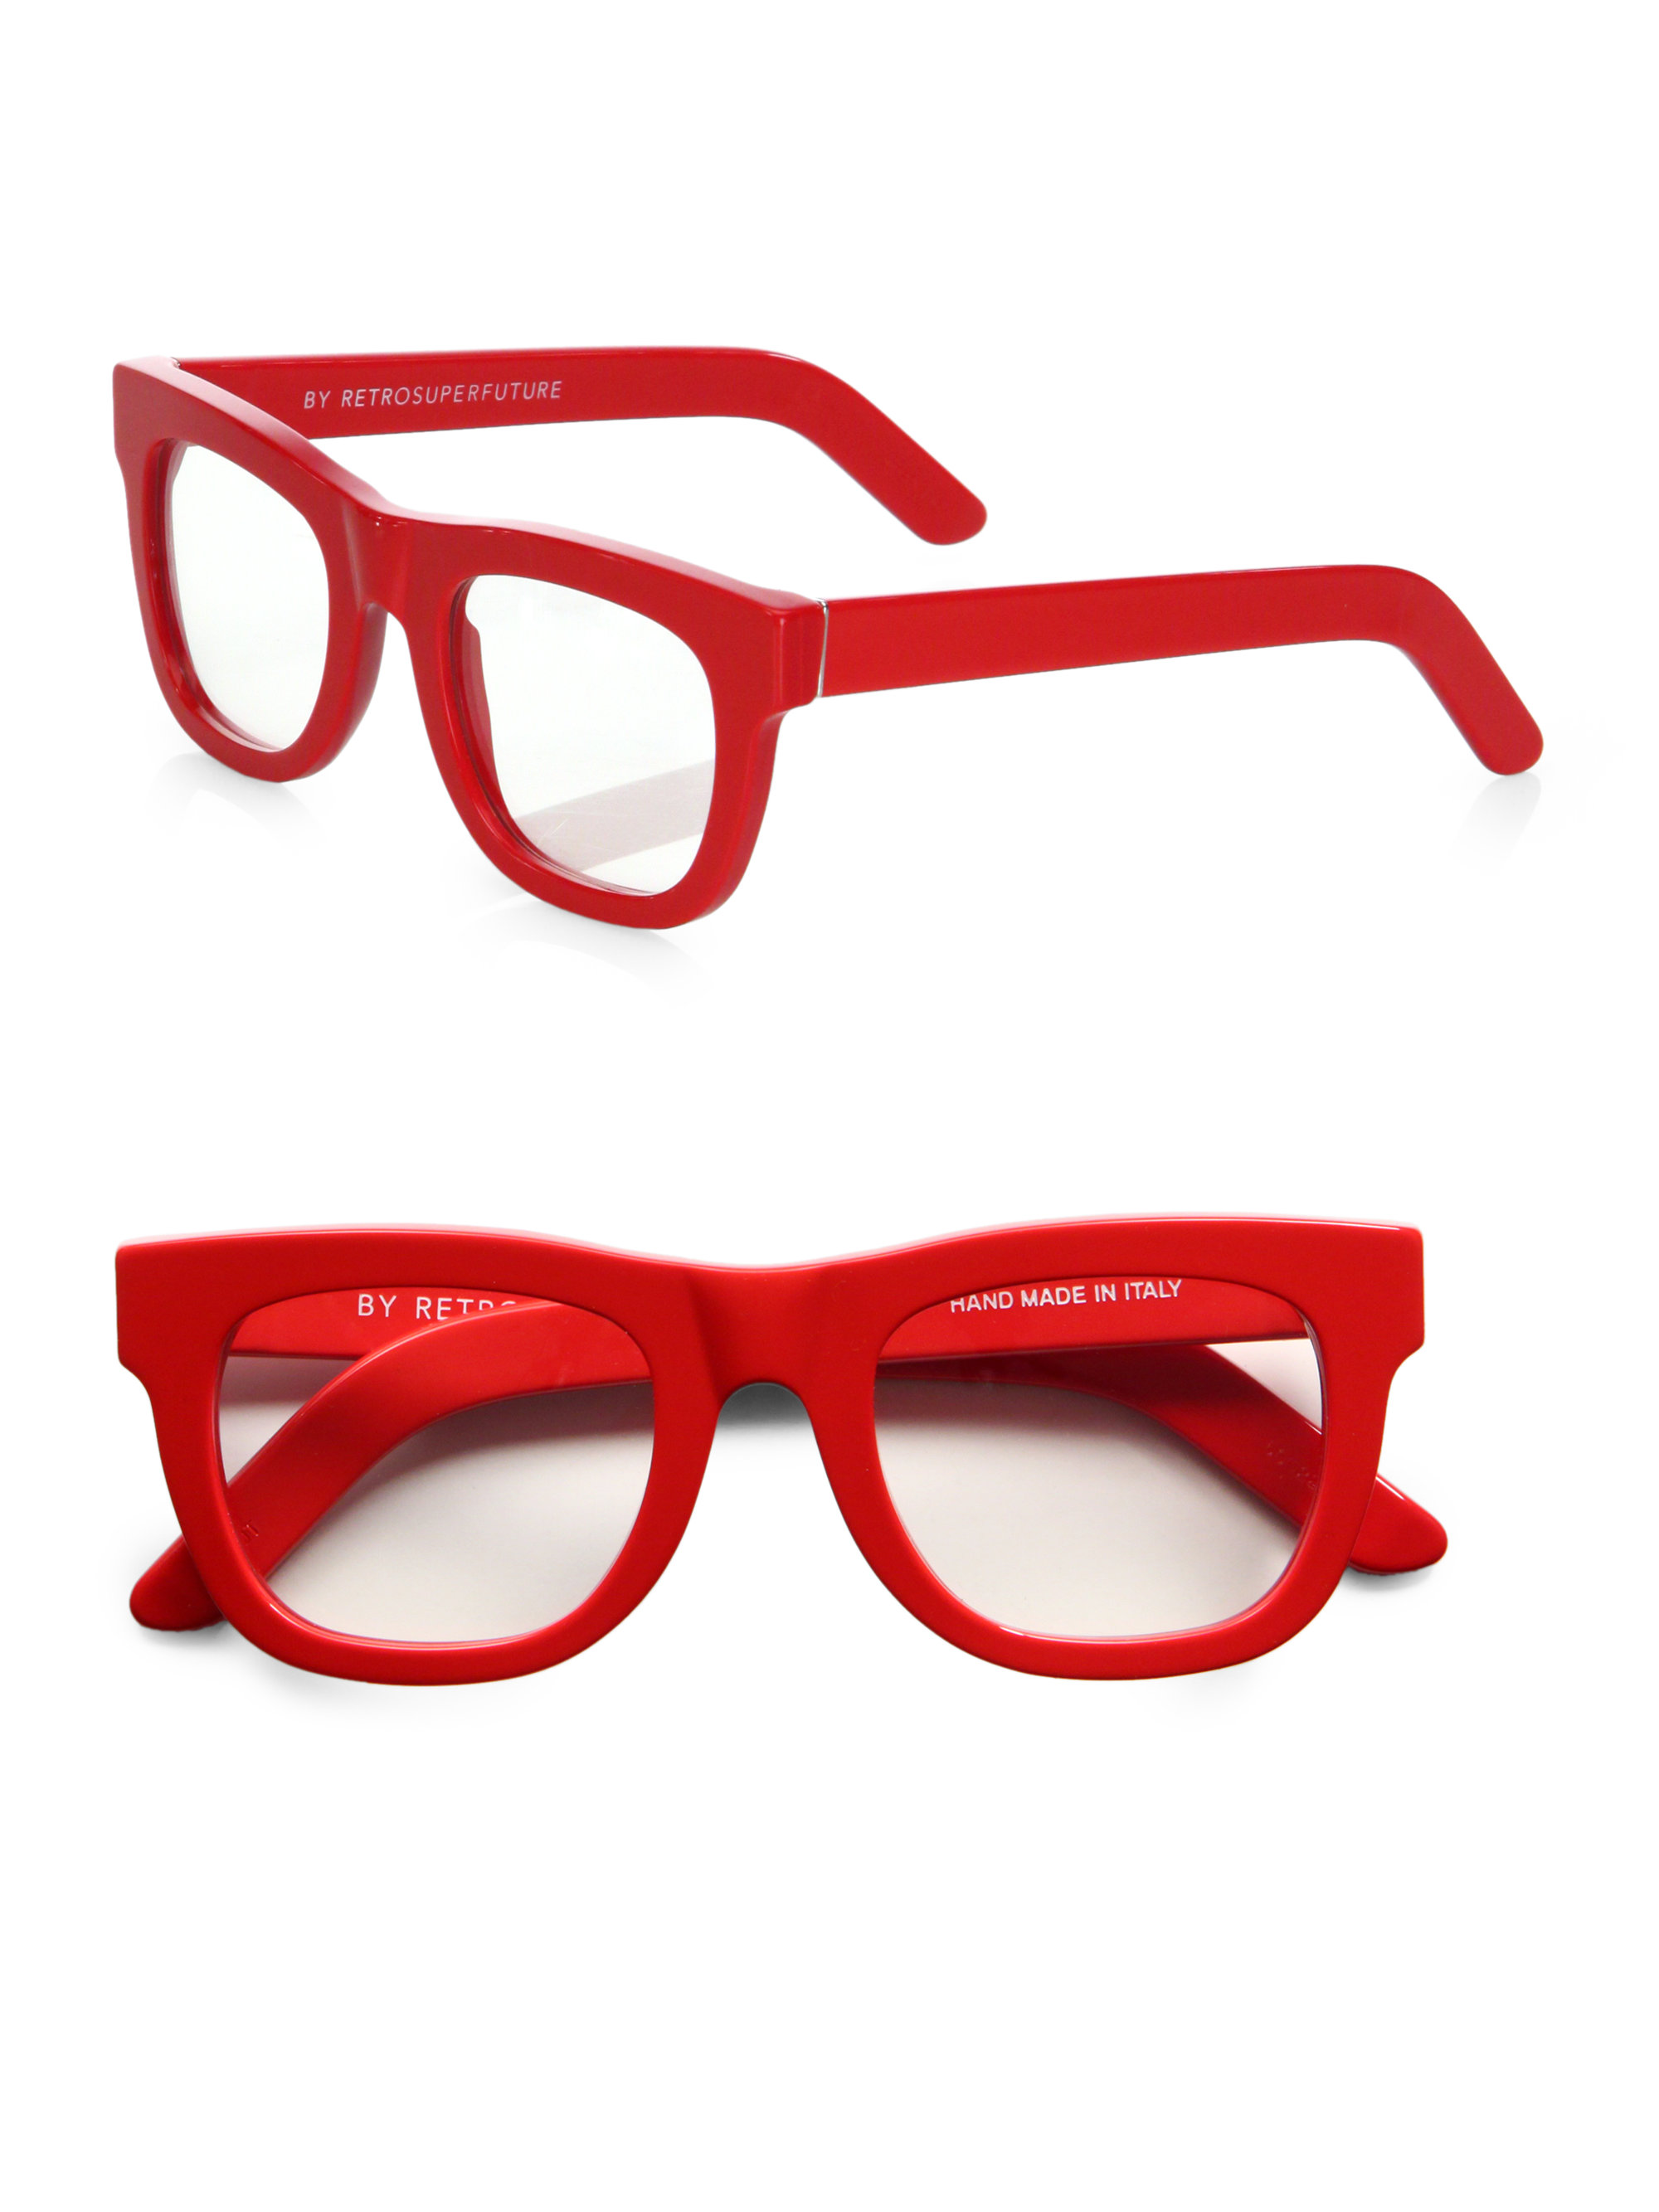 Lyst - Retrosuperfuture Red Optical Frames in Red for Men